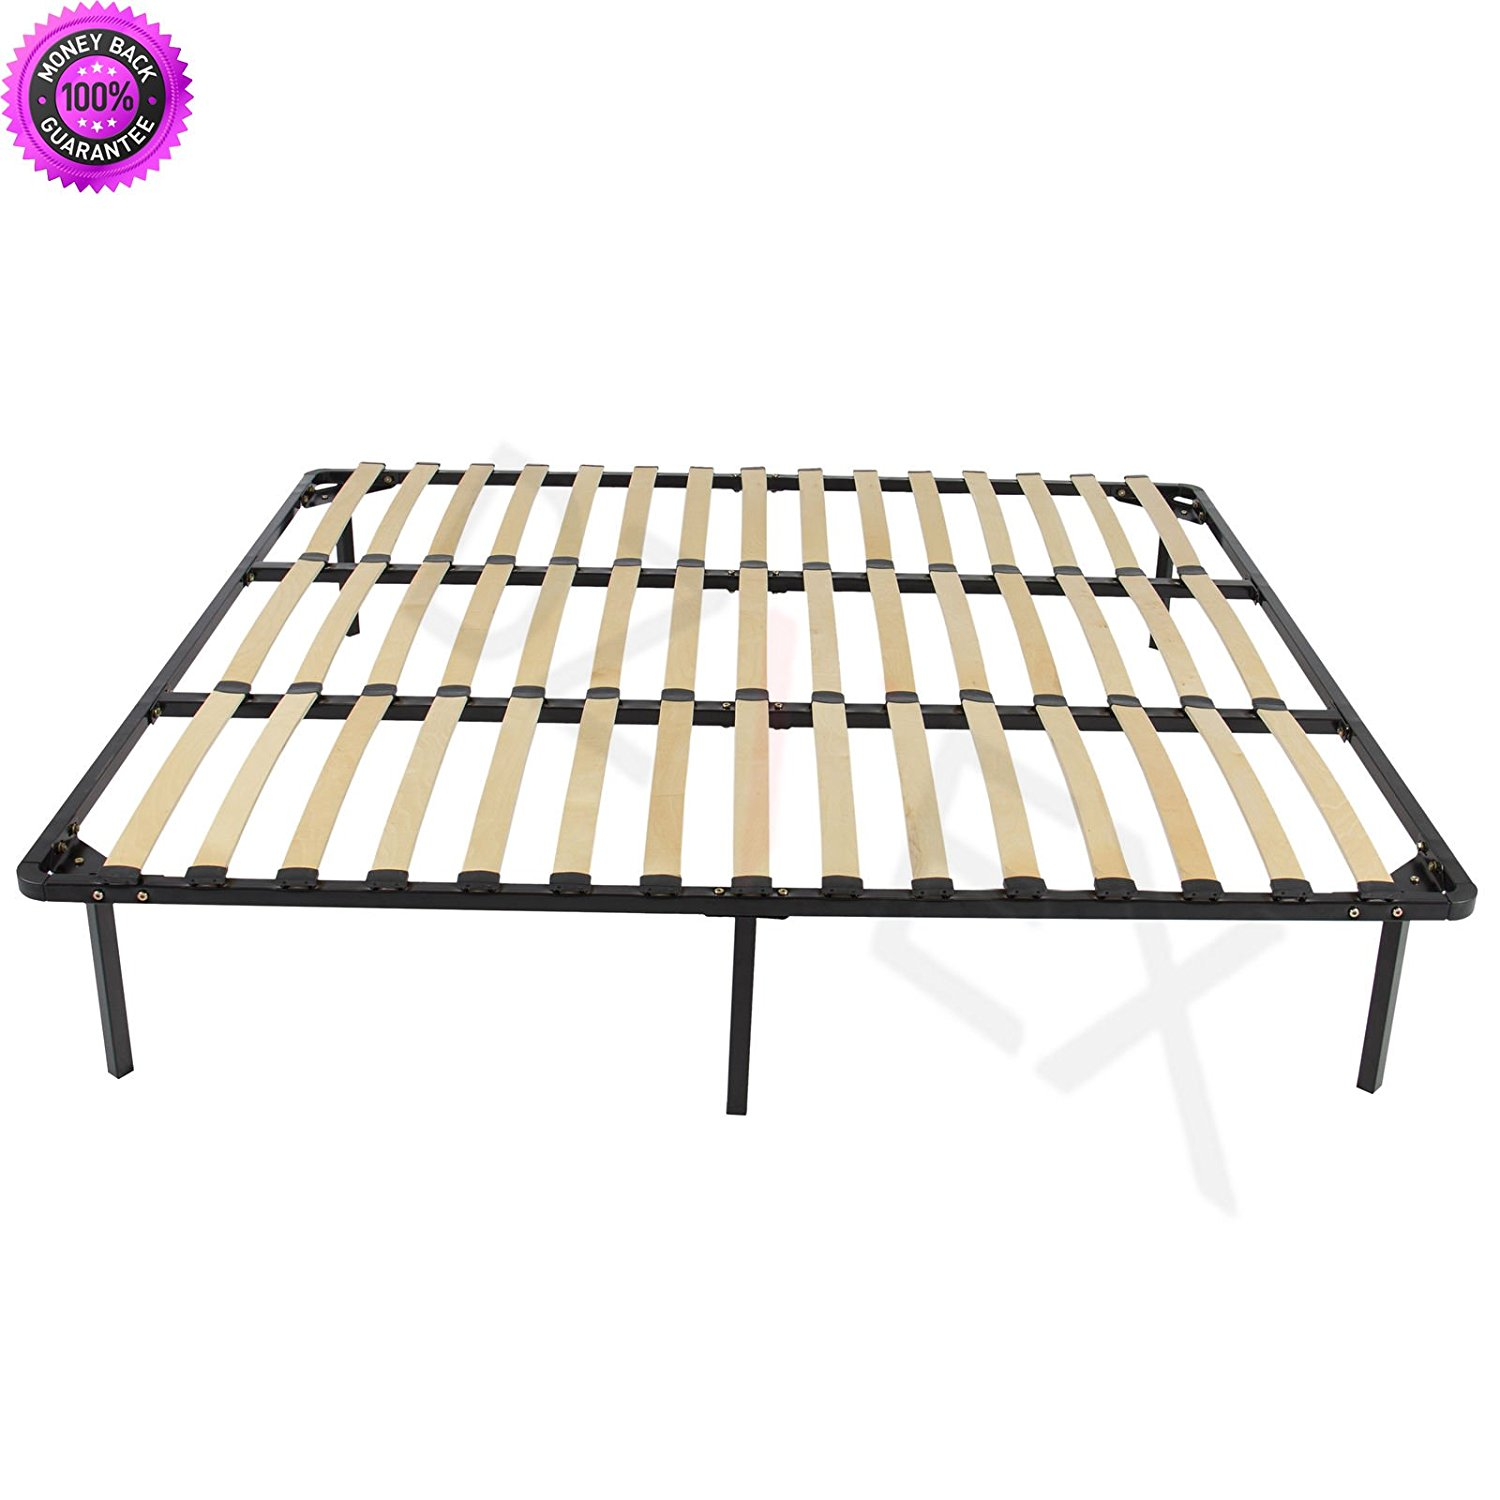 King Size Mattress Australia Cheap King Size Bed Australia Find King Size Bed Australia Deals